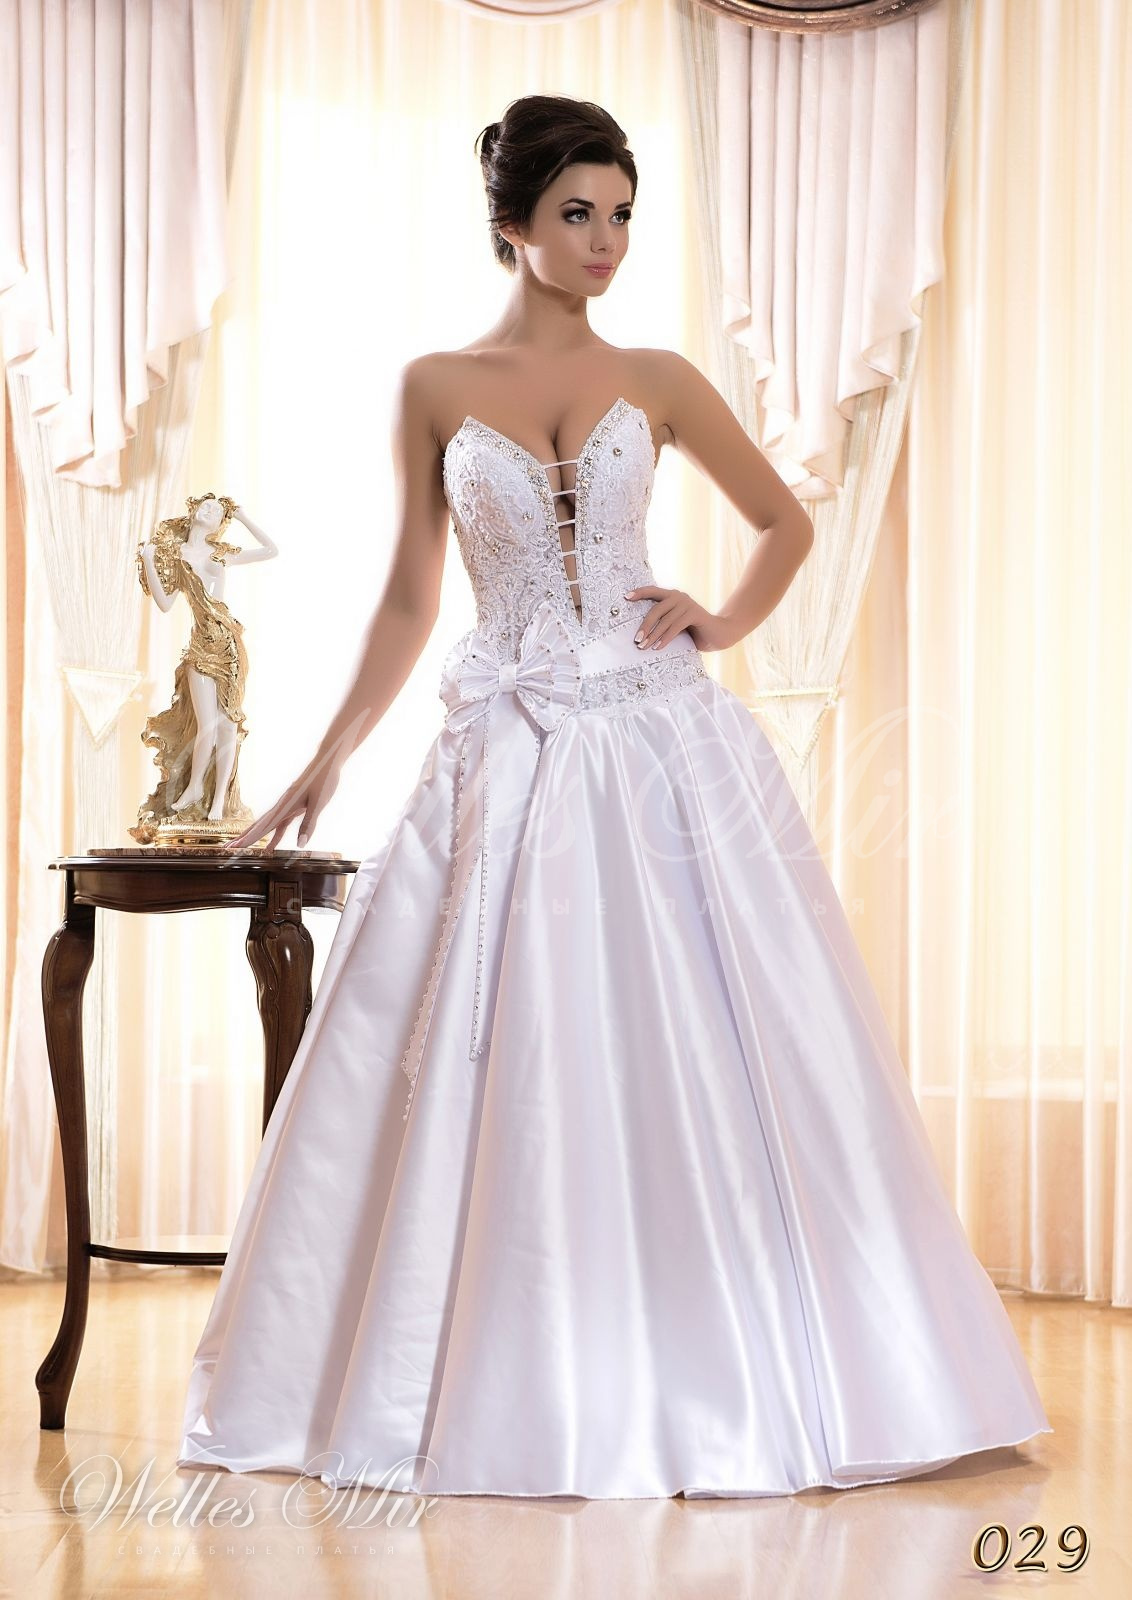 Wedding dresses 029